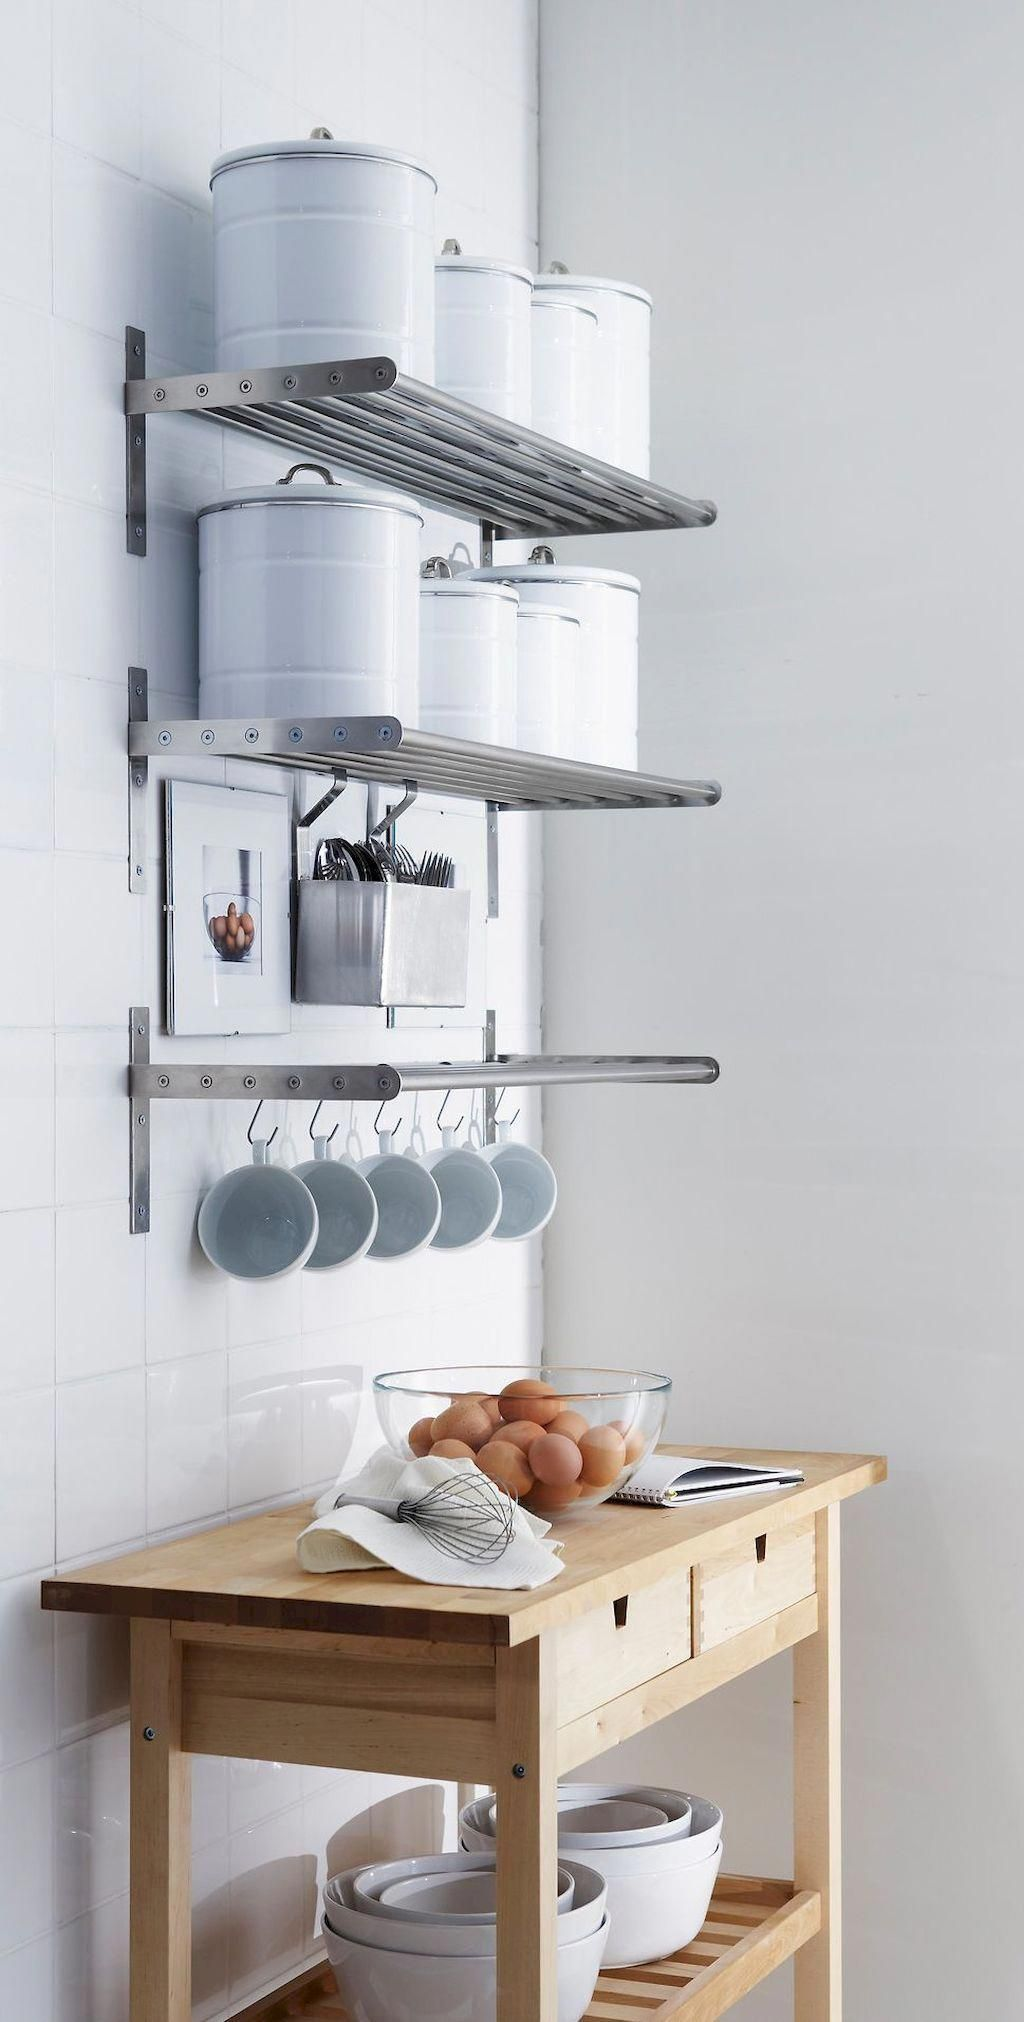 cooking area countertop styles and trends greykitchen kitchen floating shelves ikea wall mounted glass canadian tire mirror with shelf drawer small shelving unit white island